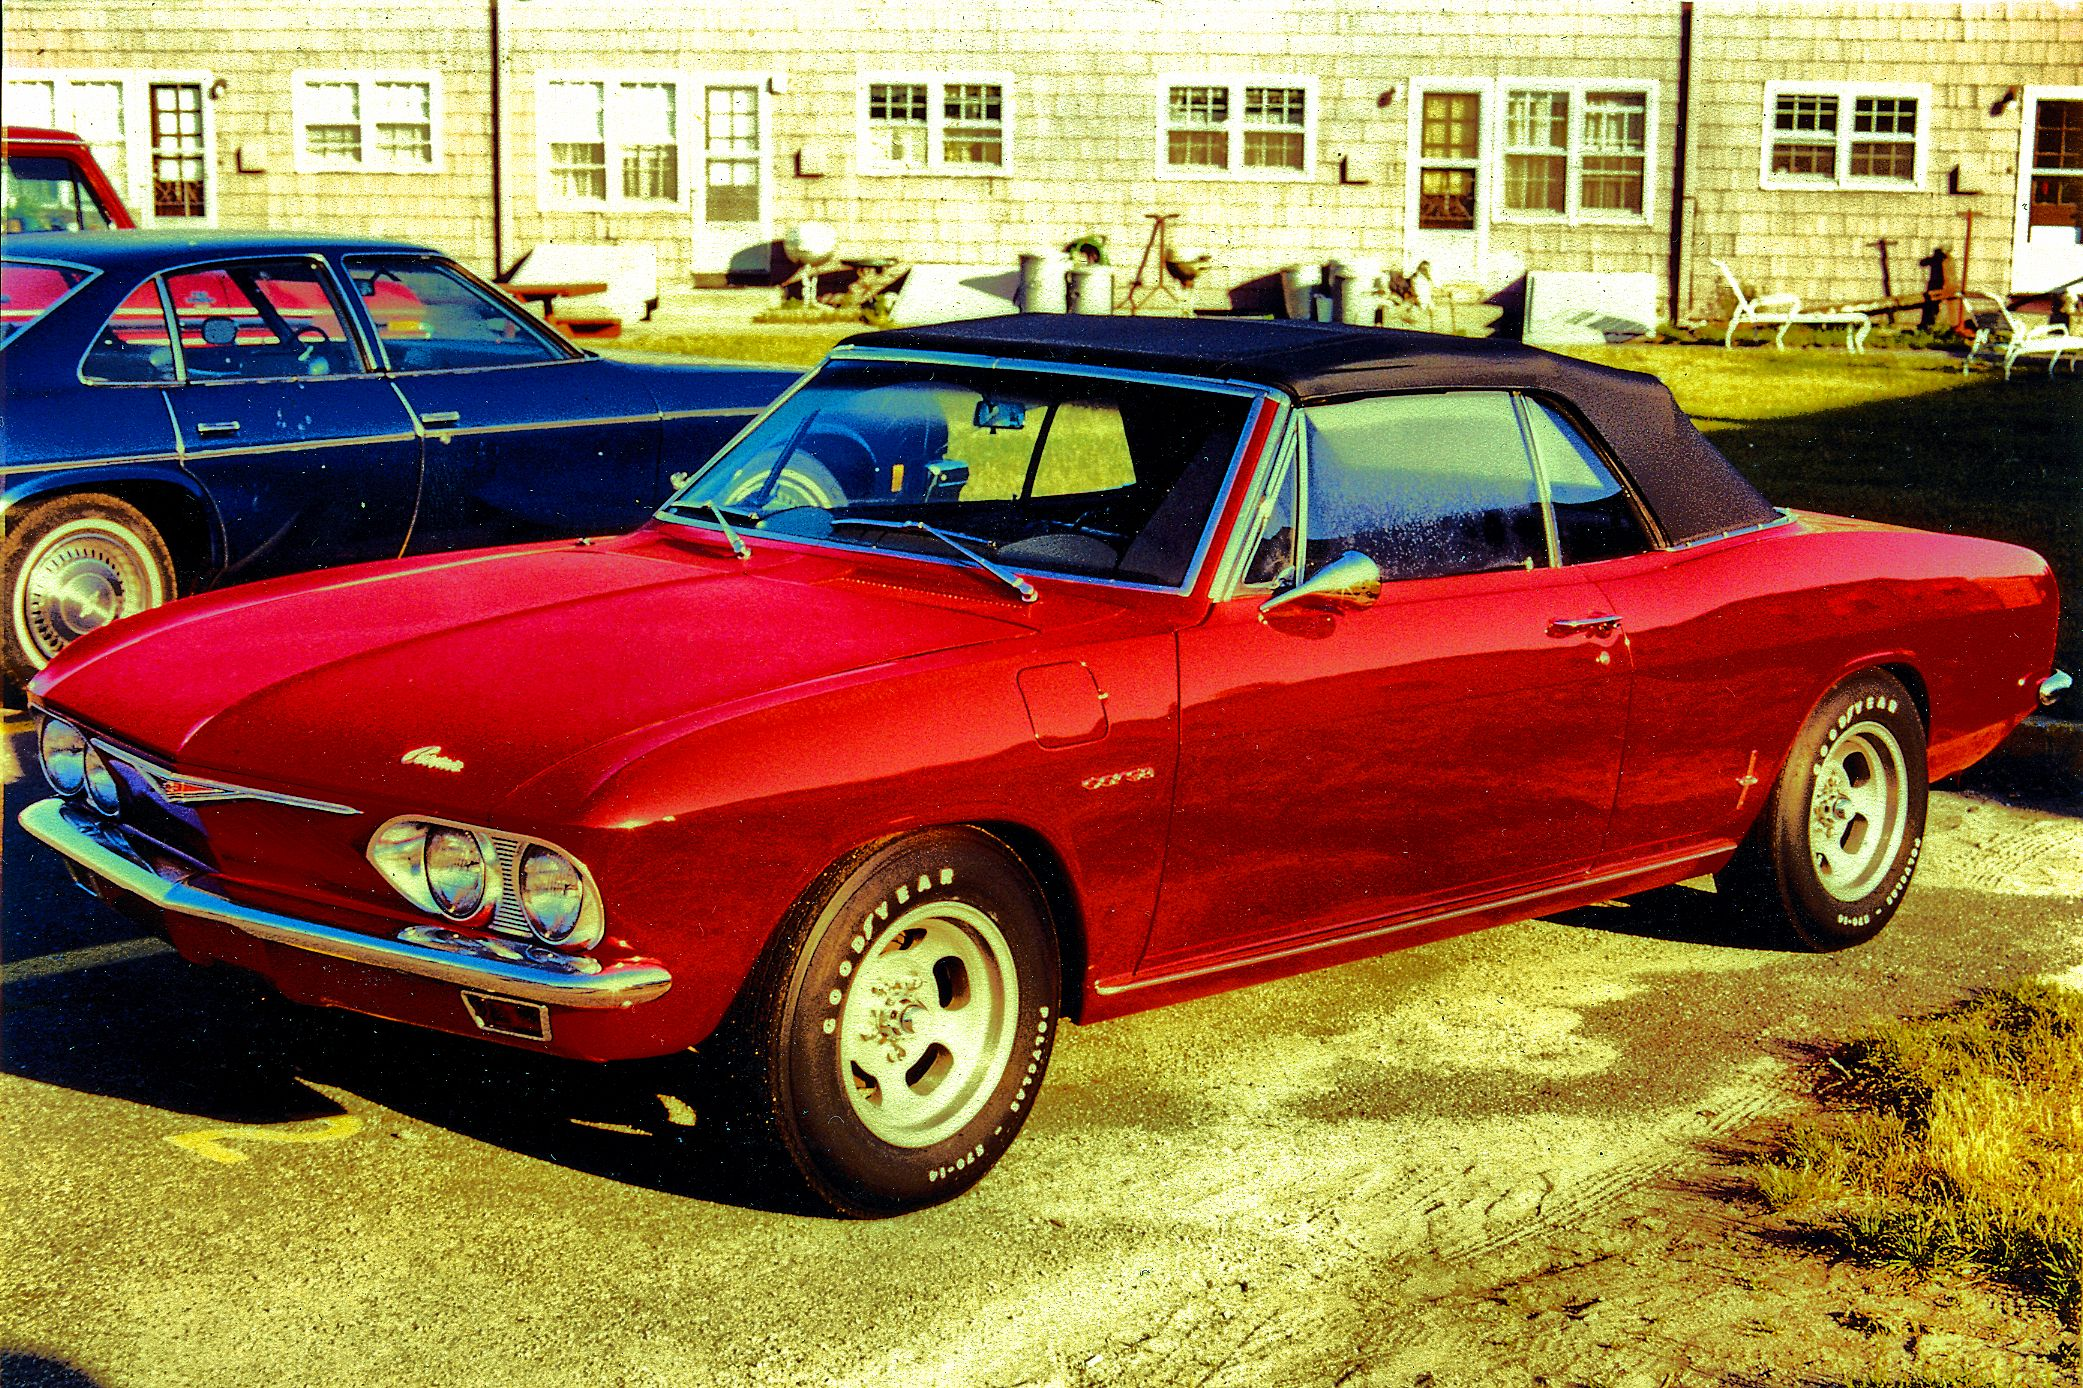 1965 Corvair Corsa Convertible 140hp 4x1 - Spring 1980 - Base Housing - Hanscom AFB, MA.jpg